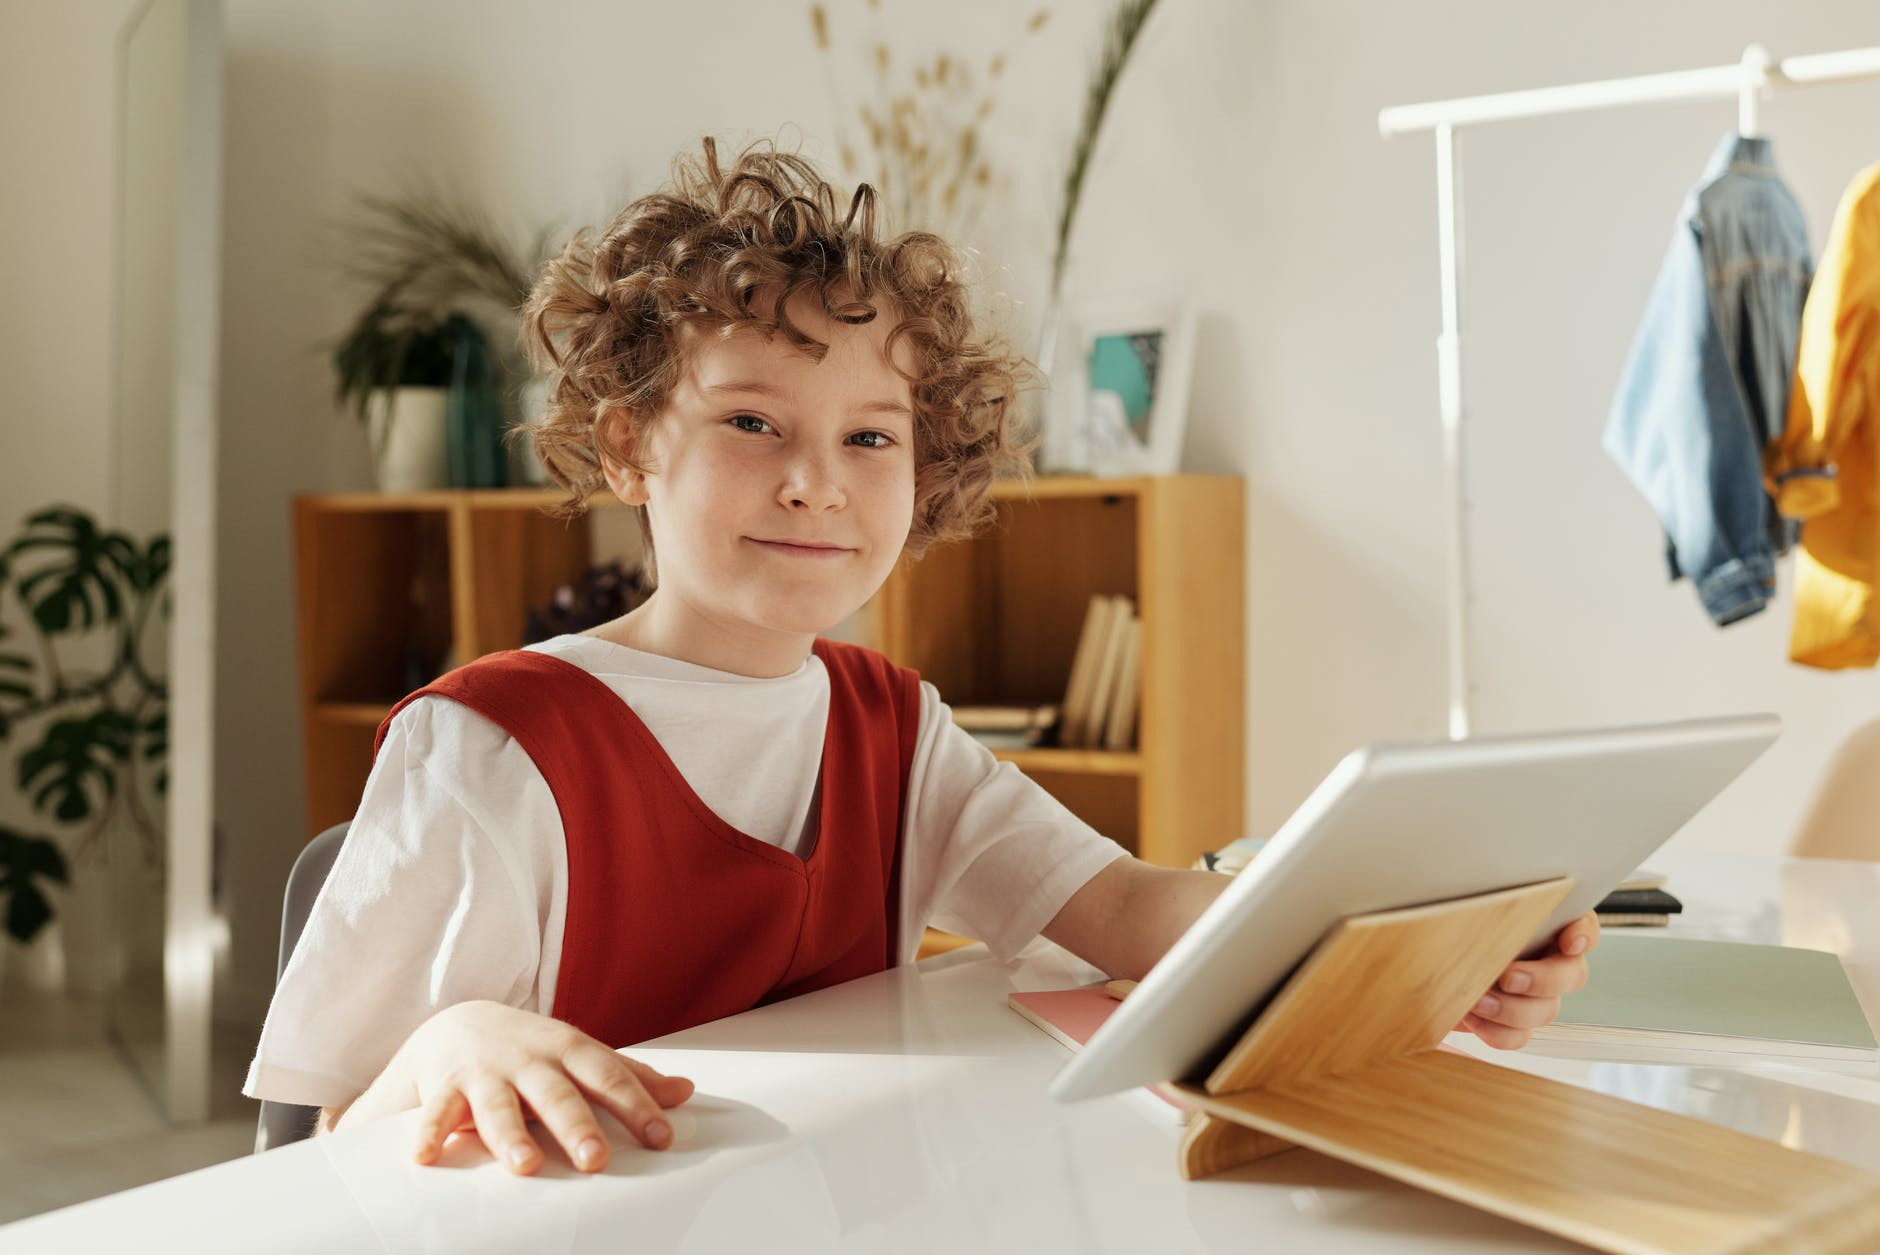 child smiling while holding silver tablet